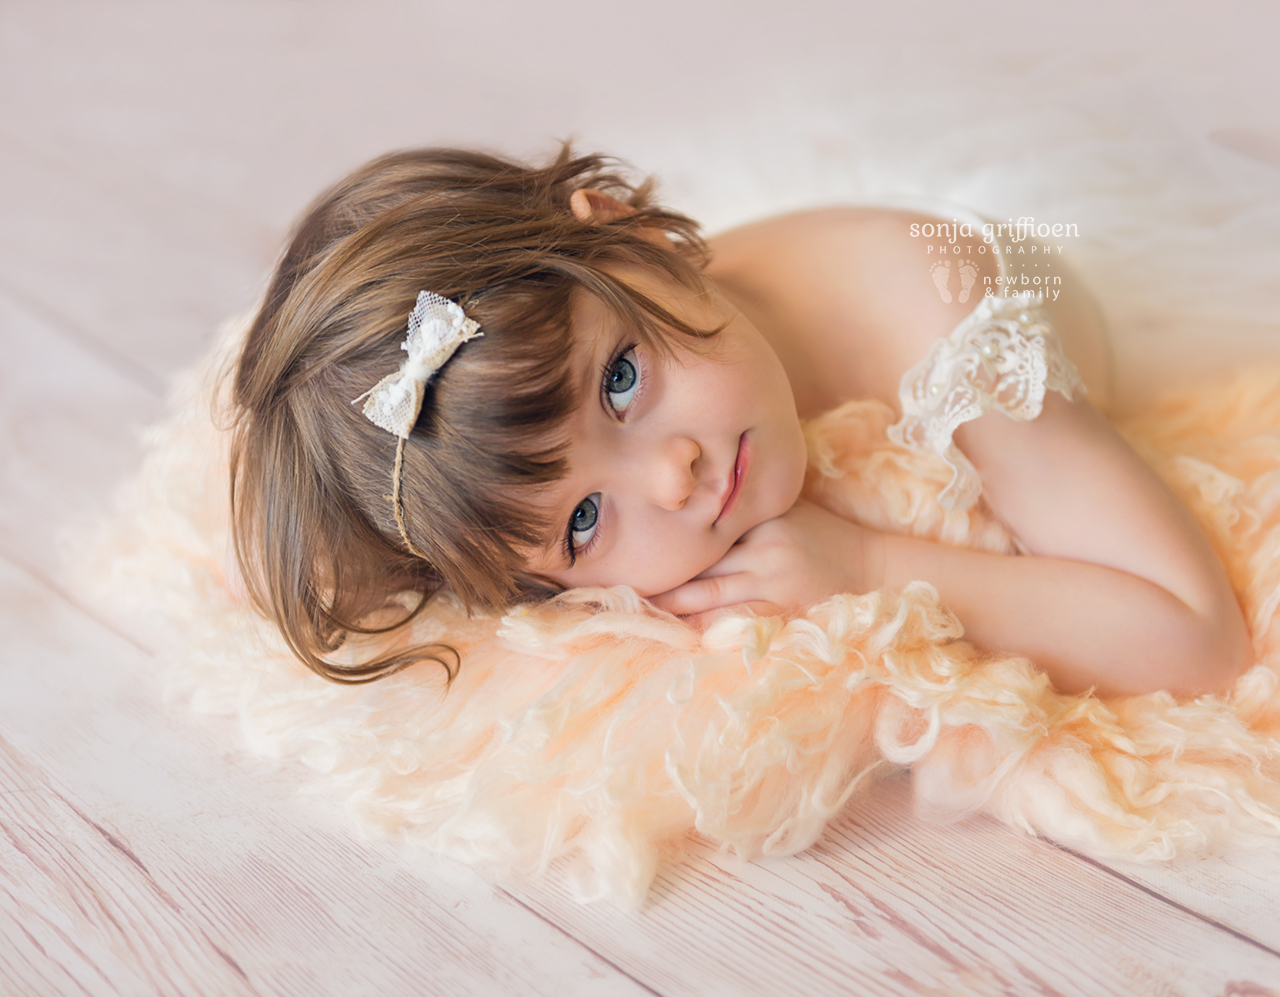 Bonnie-3-years-Brisbane-baby-child-photographer-Sonja-Griffioen-05.jpg